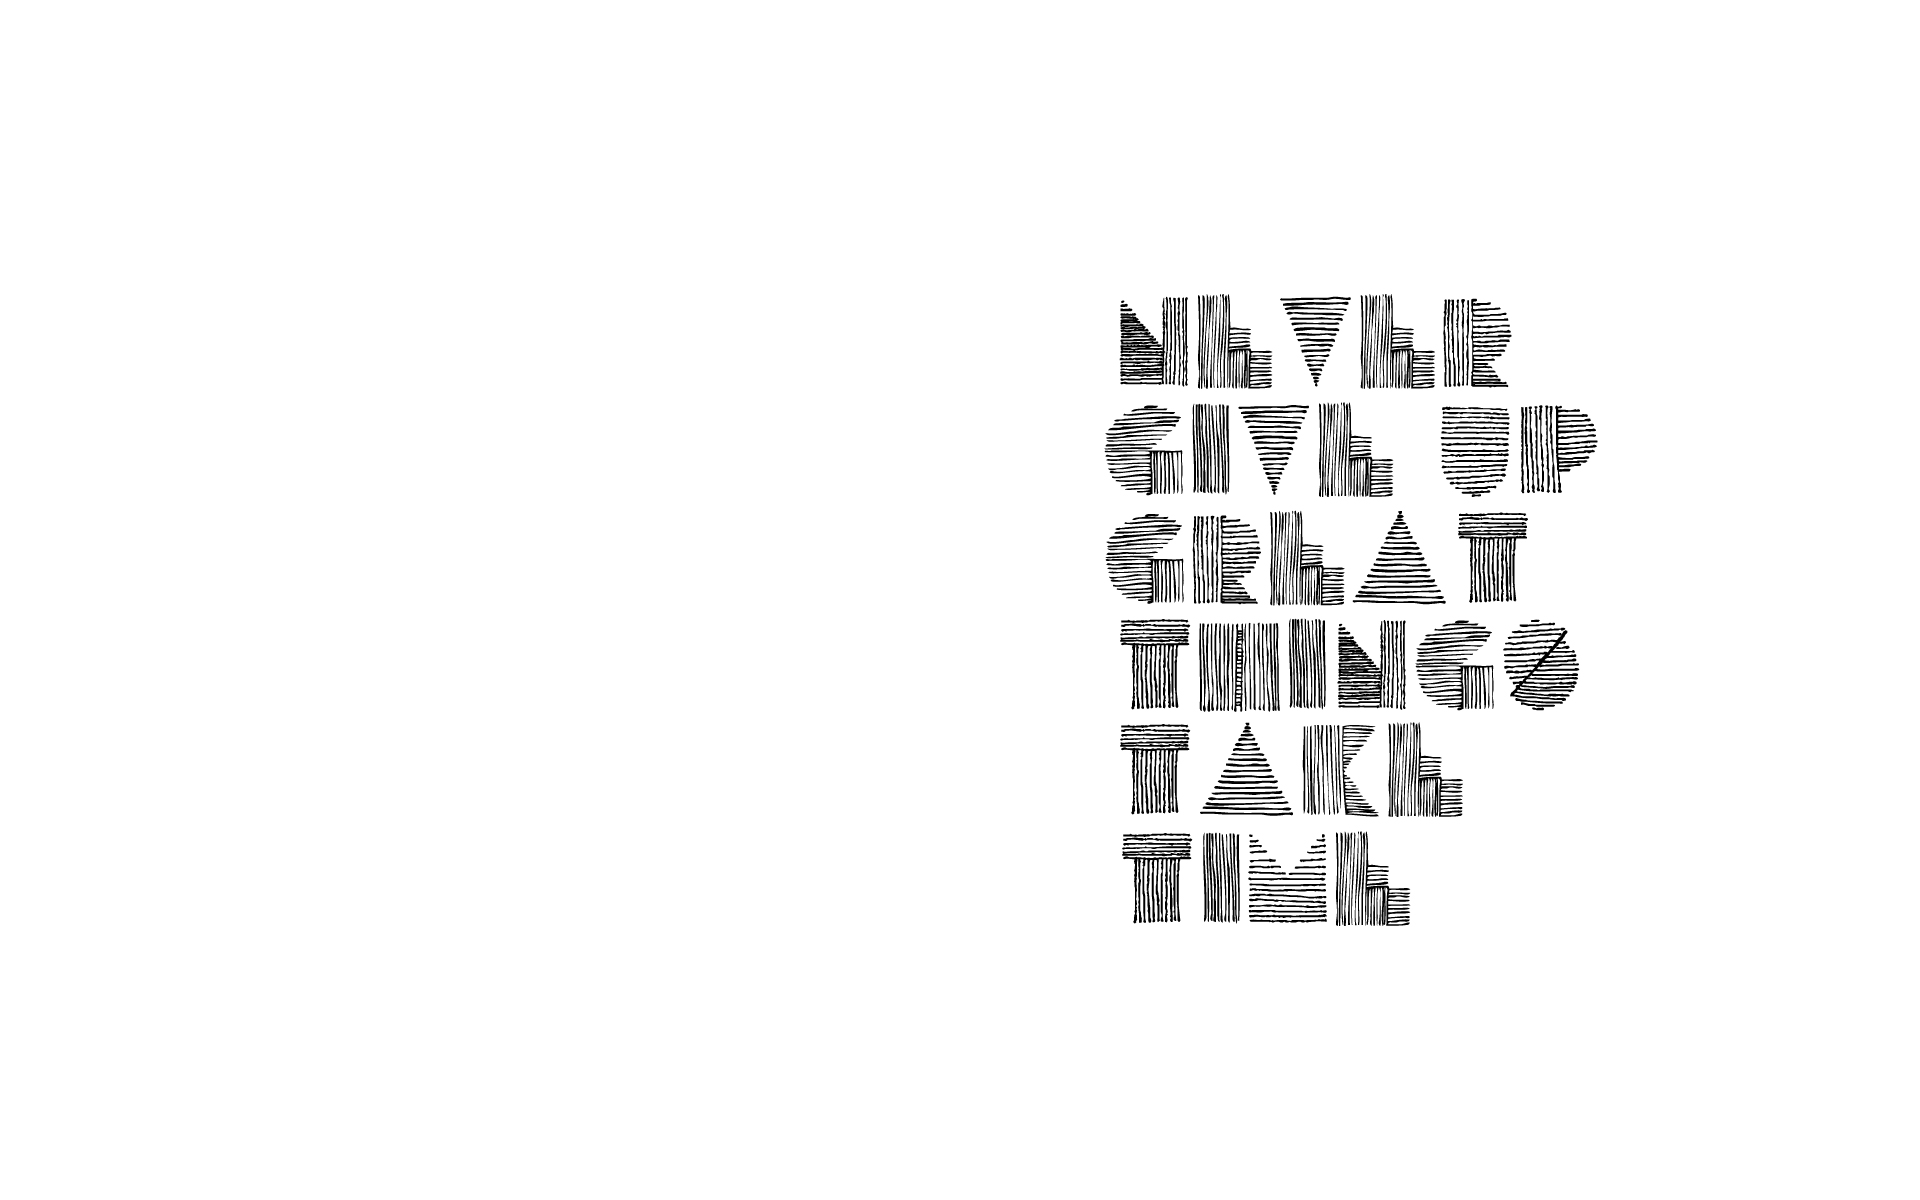 Never-Give-Up-Desktop-Wallpaper-1